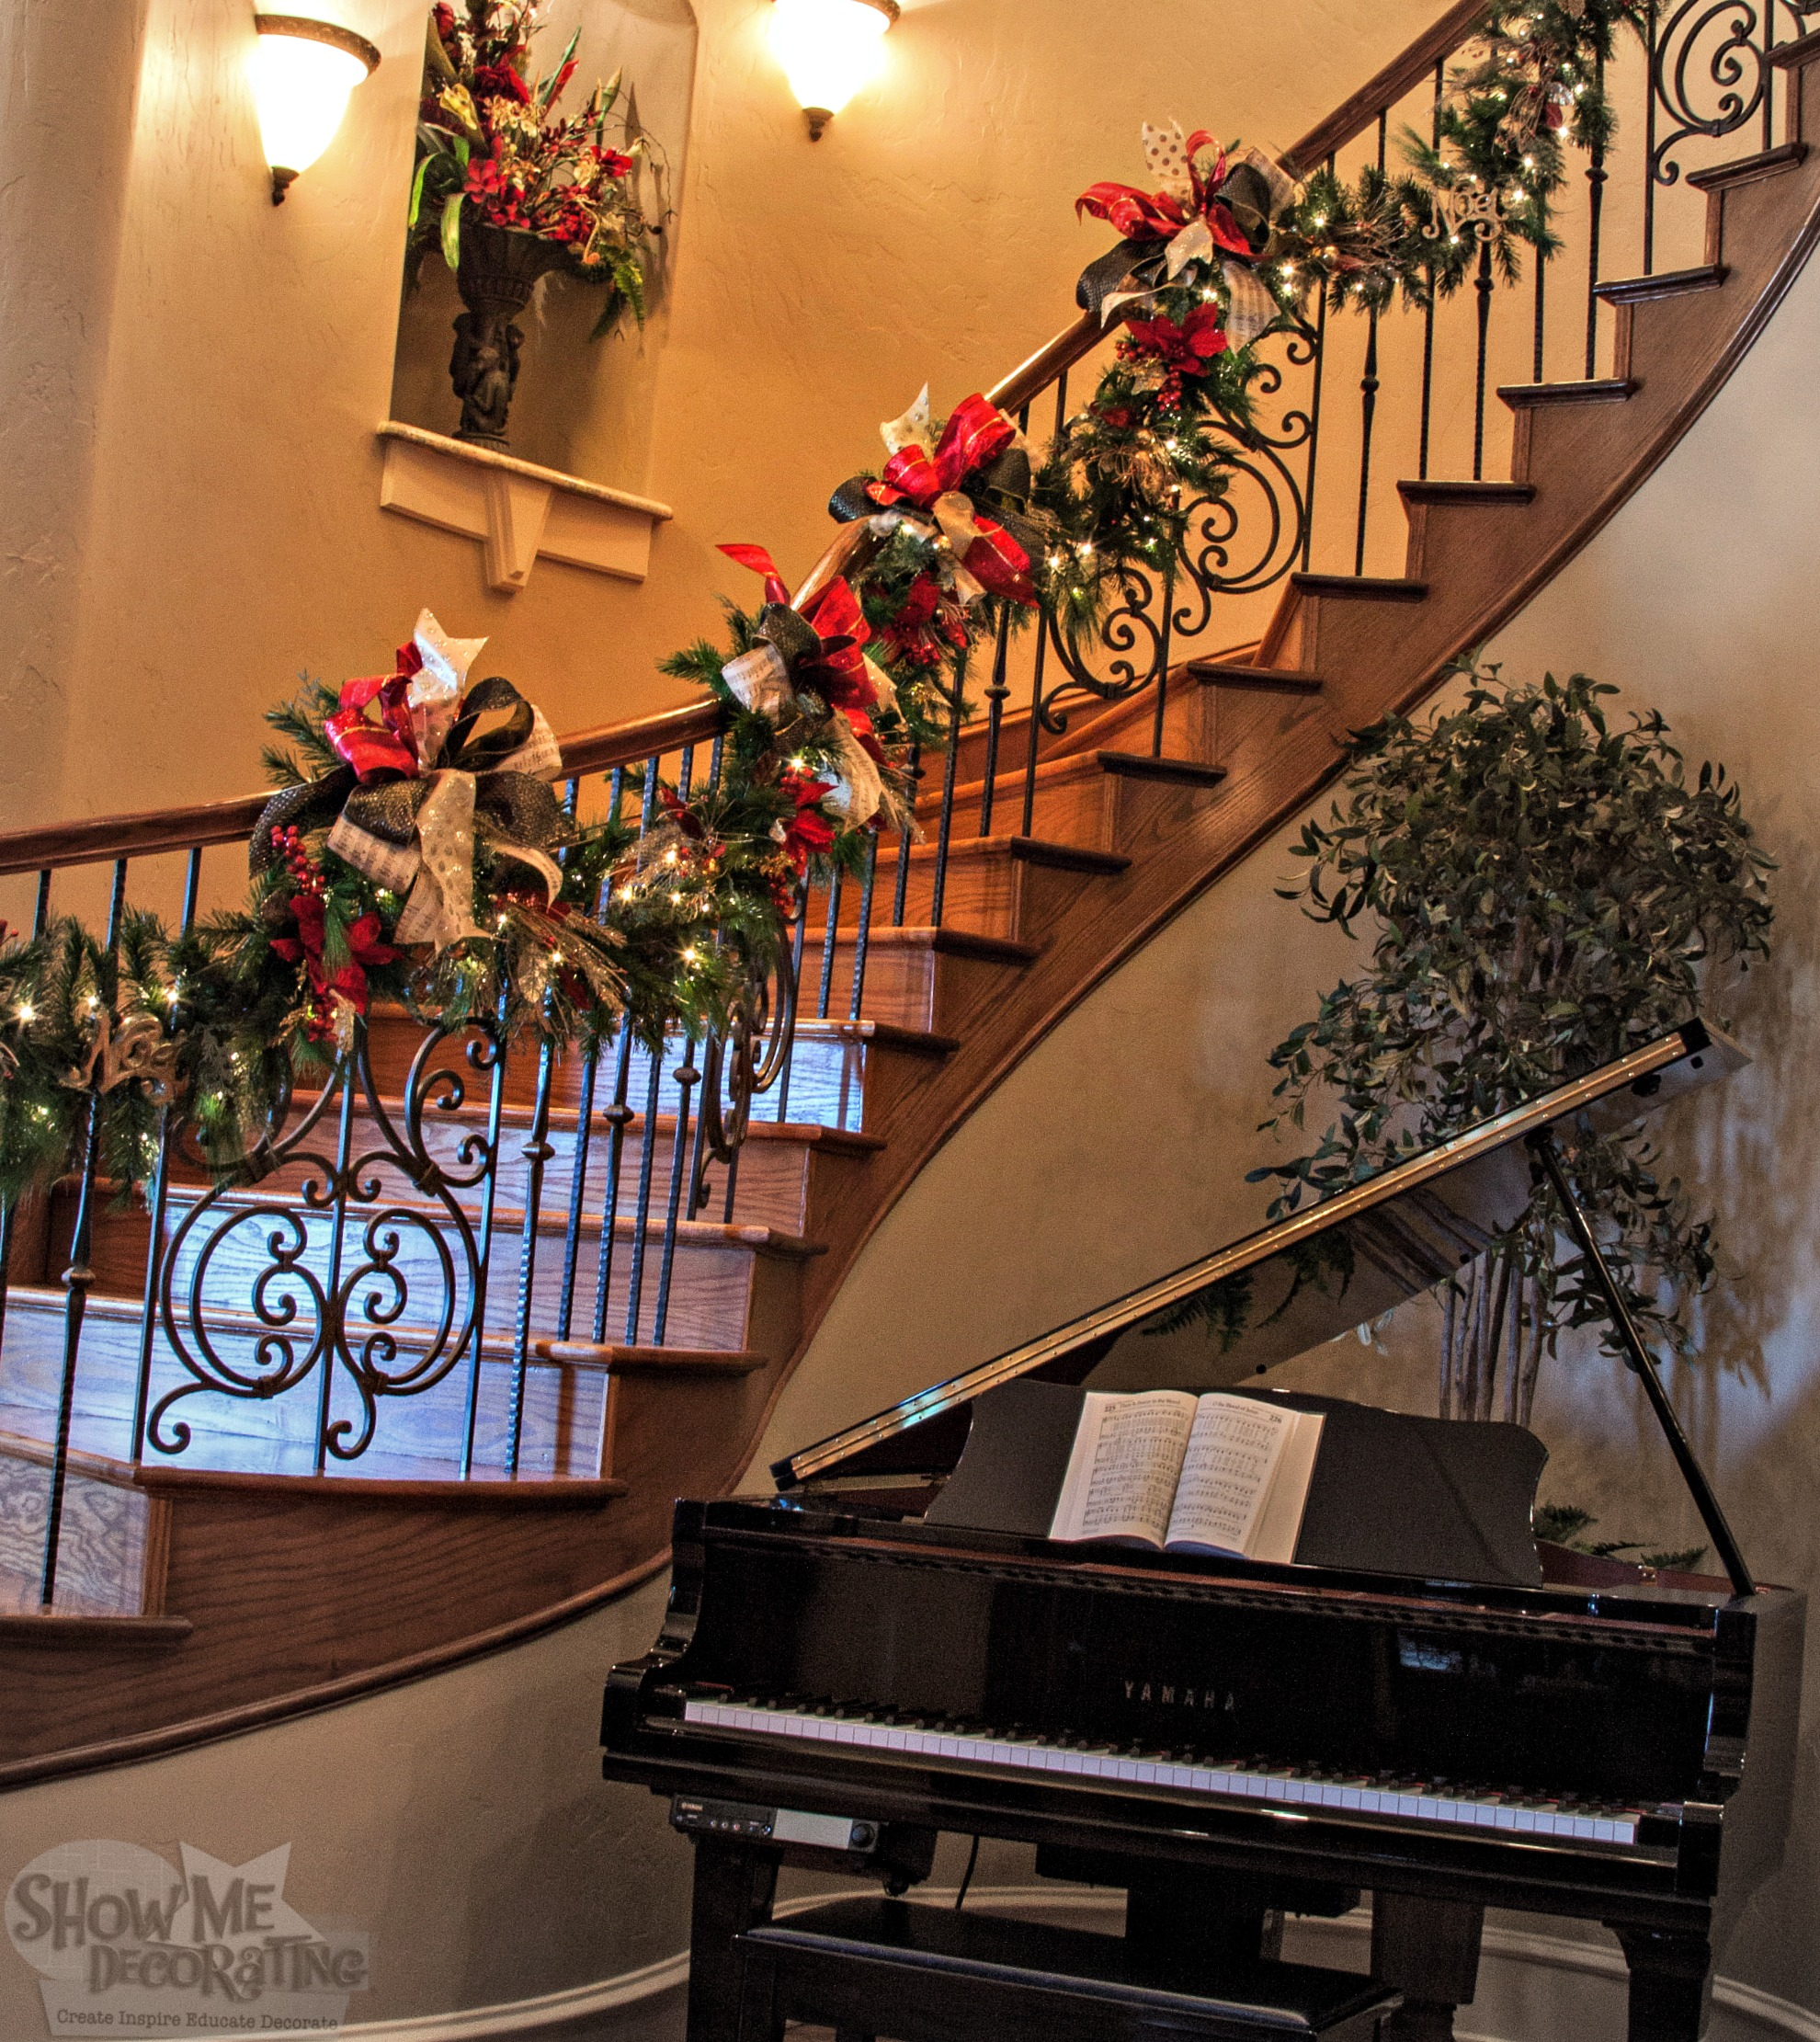 Decorate The Stairs For Christmas: Create. Inspire. Educate. Decorate